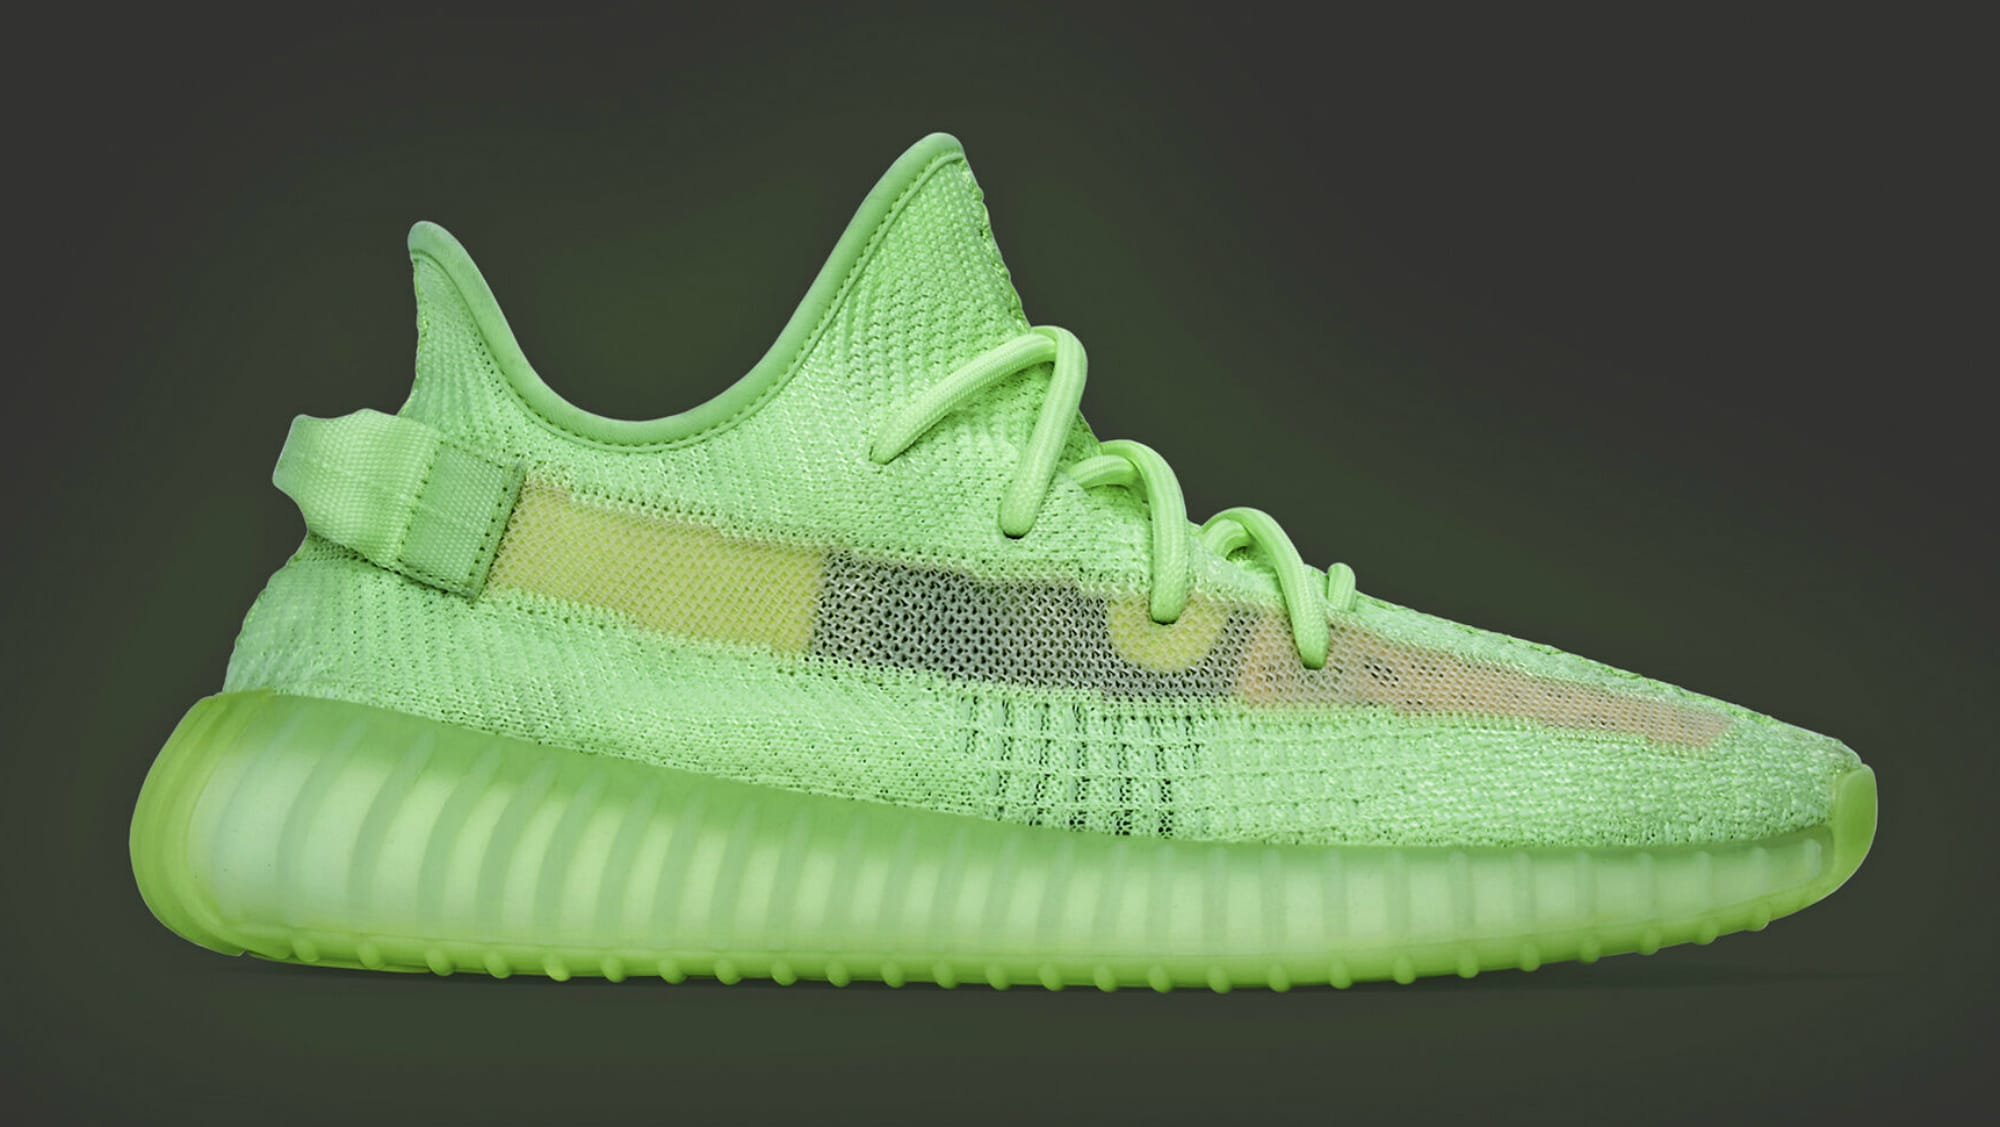 adidas-yeezy-boost-350-v2-glow-eg5293-release-date